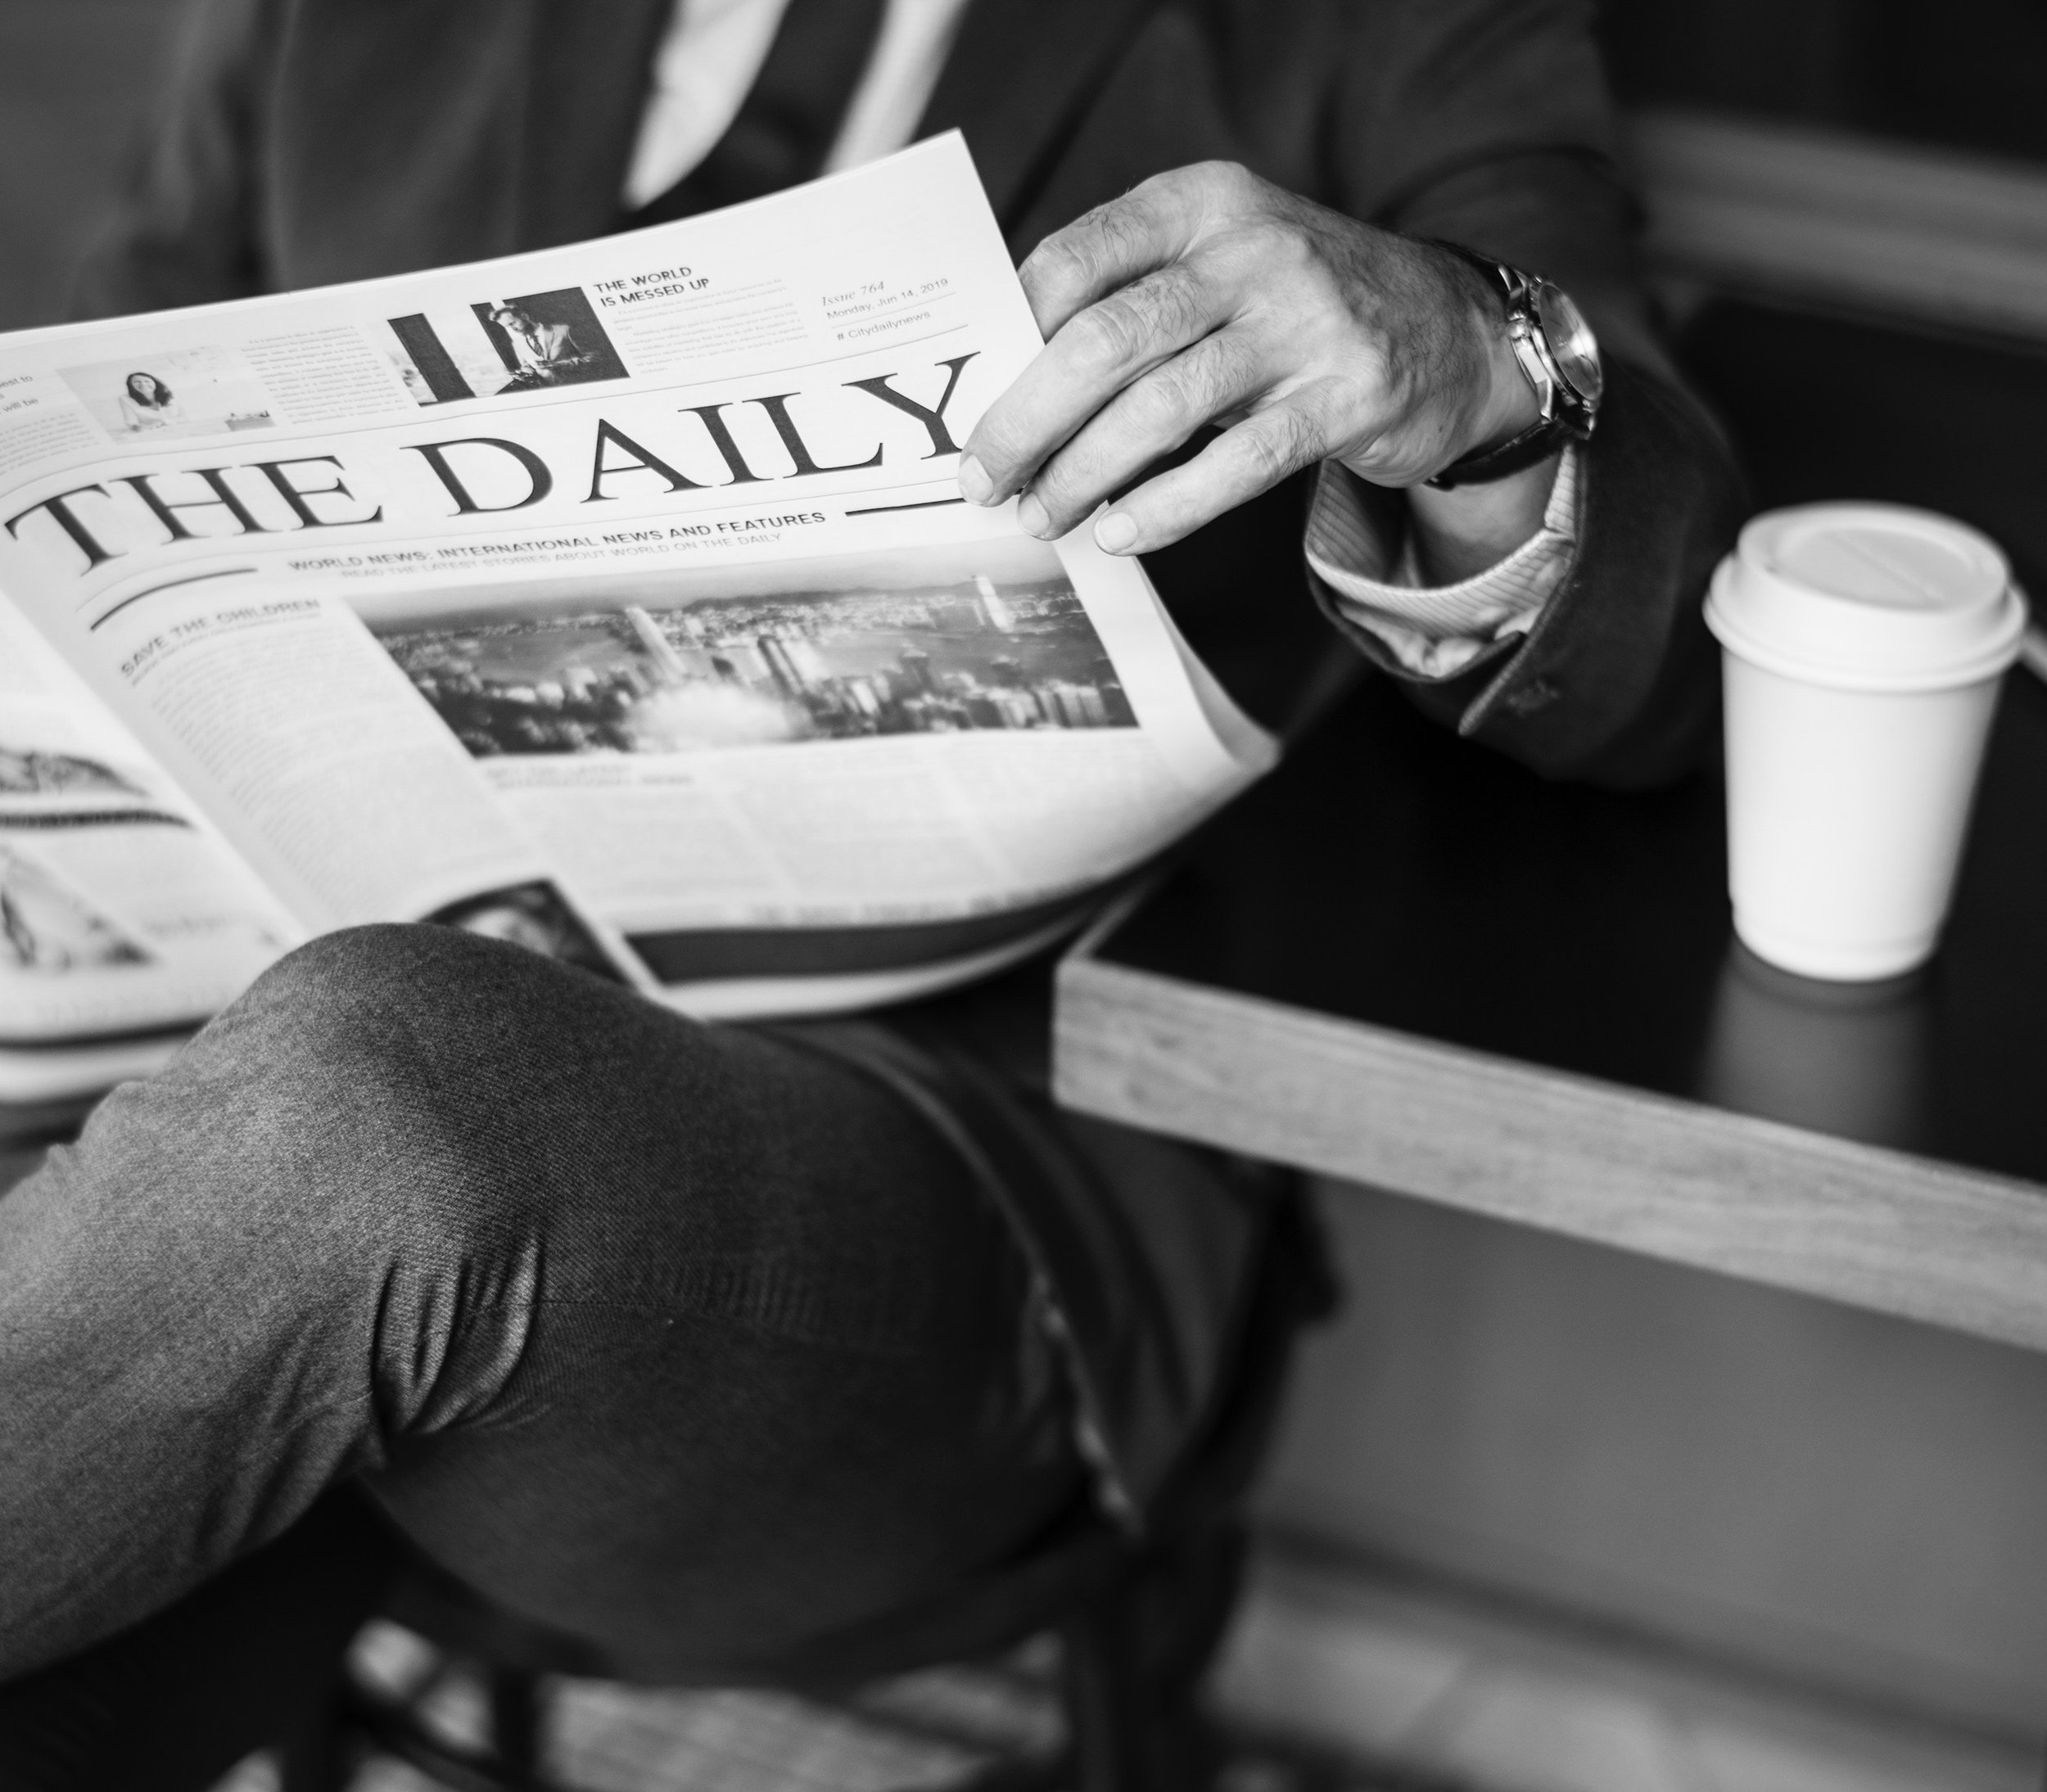 A man sitting on a bench reading a newspaper with a coffee cup next to him